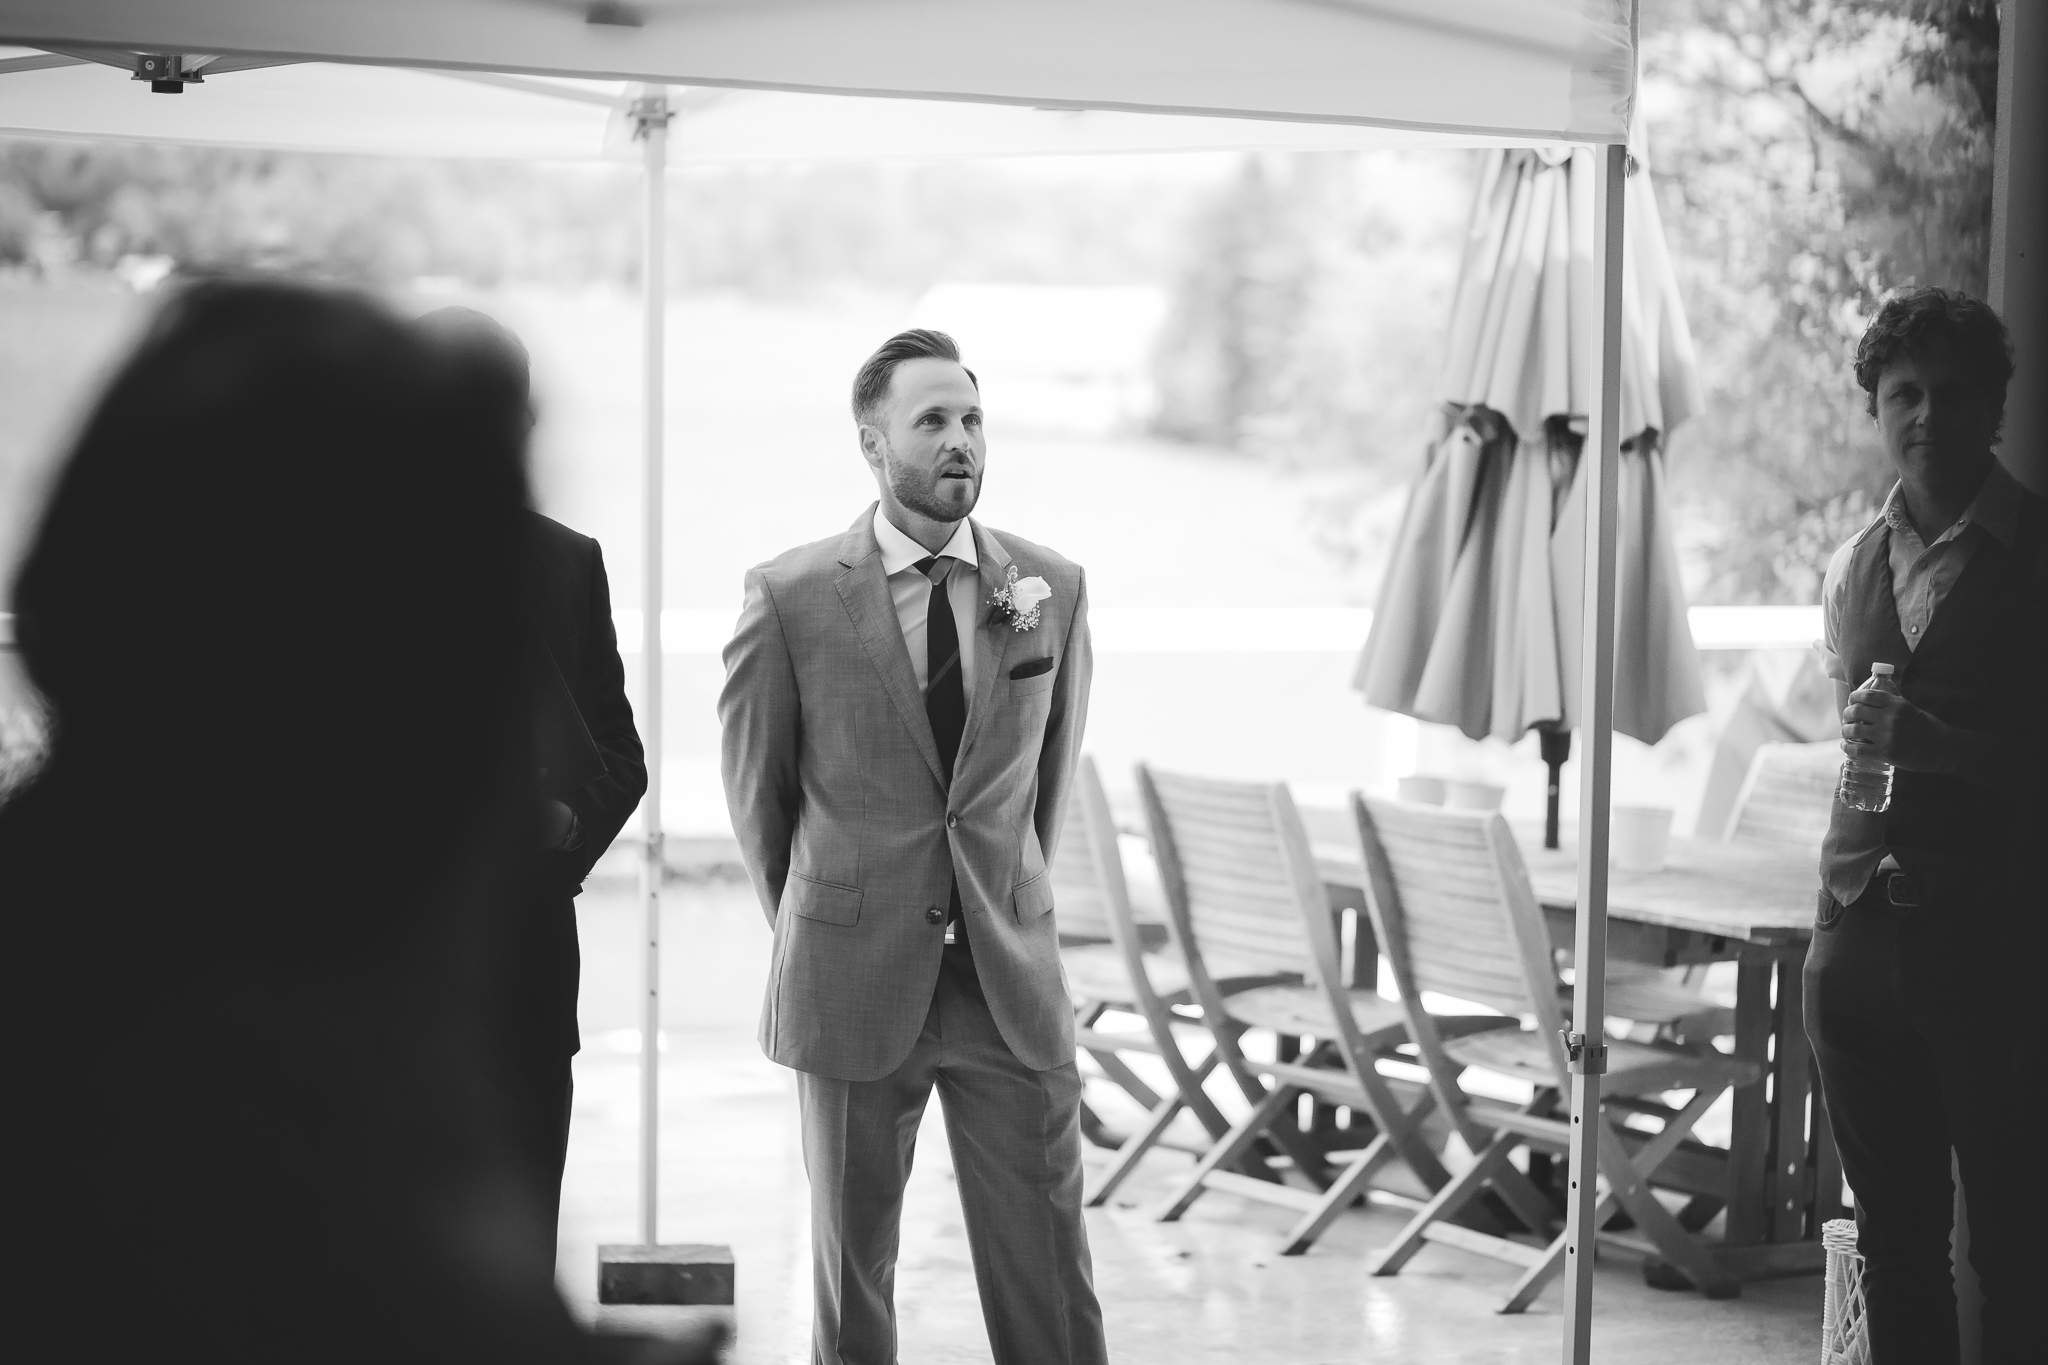 Amy D Photography- Barrie Wedding Photography- Bride Getting Ready- Muskoka Wedding Photography- Best Wedding Photographers- Weddings in Muskoka- Waterfront Ceremony (91 of 95).jpg